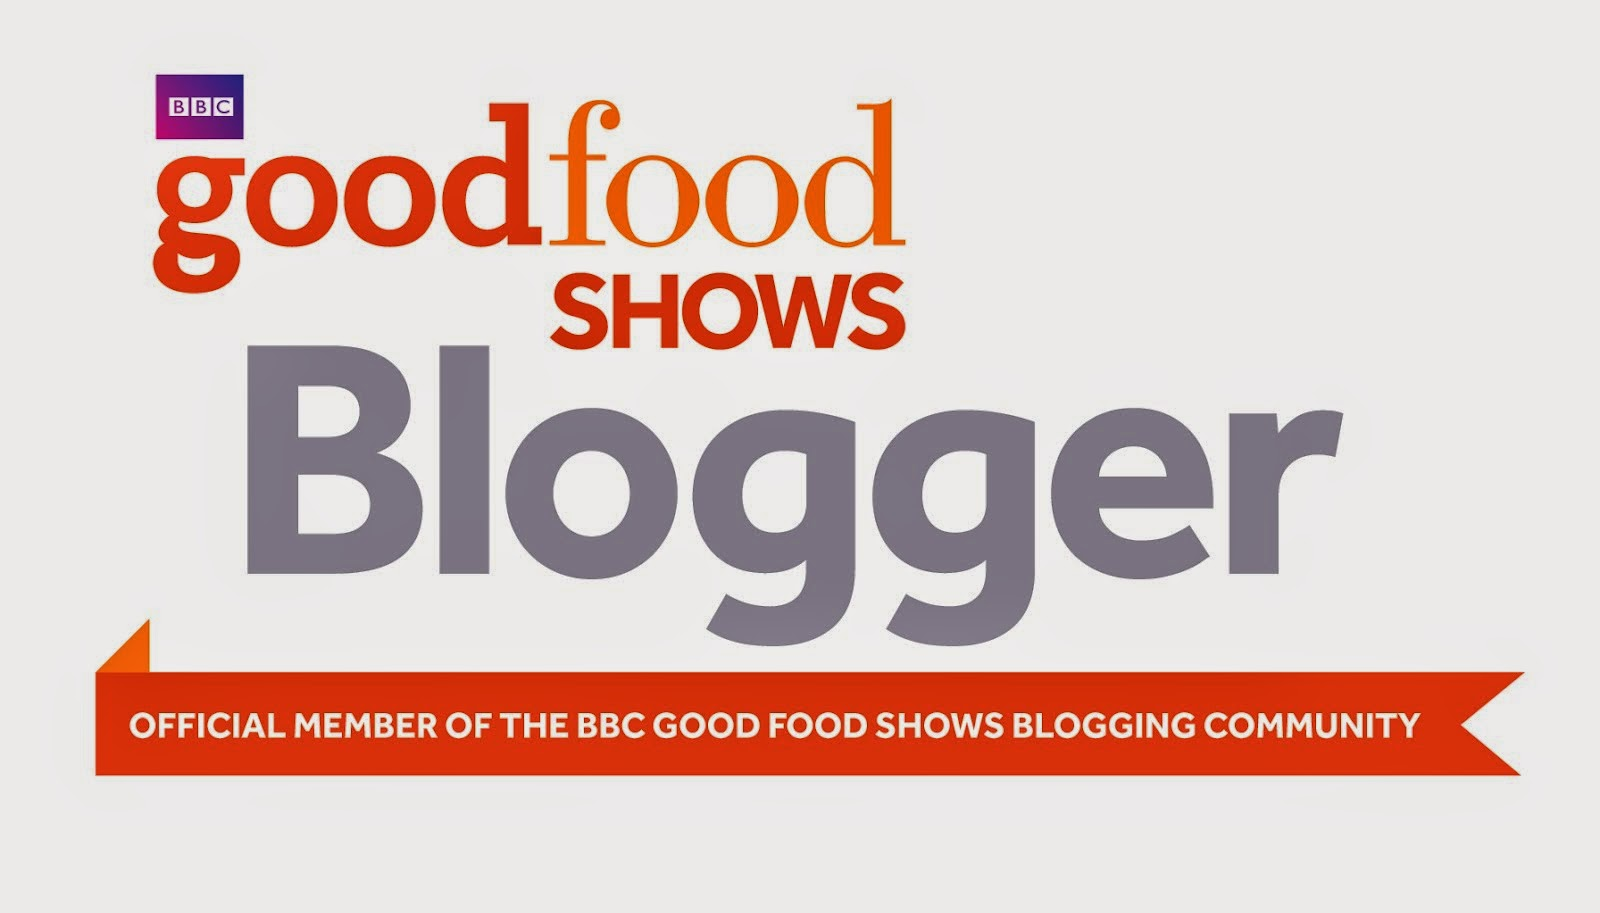 Official Member of the BBC Good Food Show blogging community